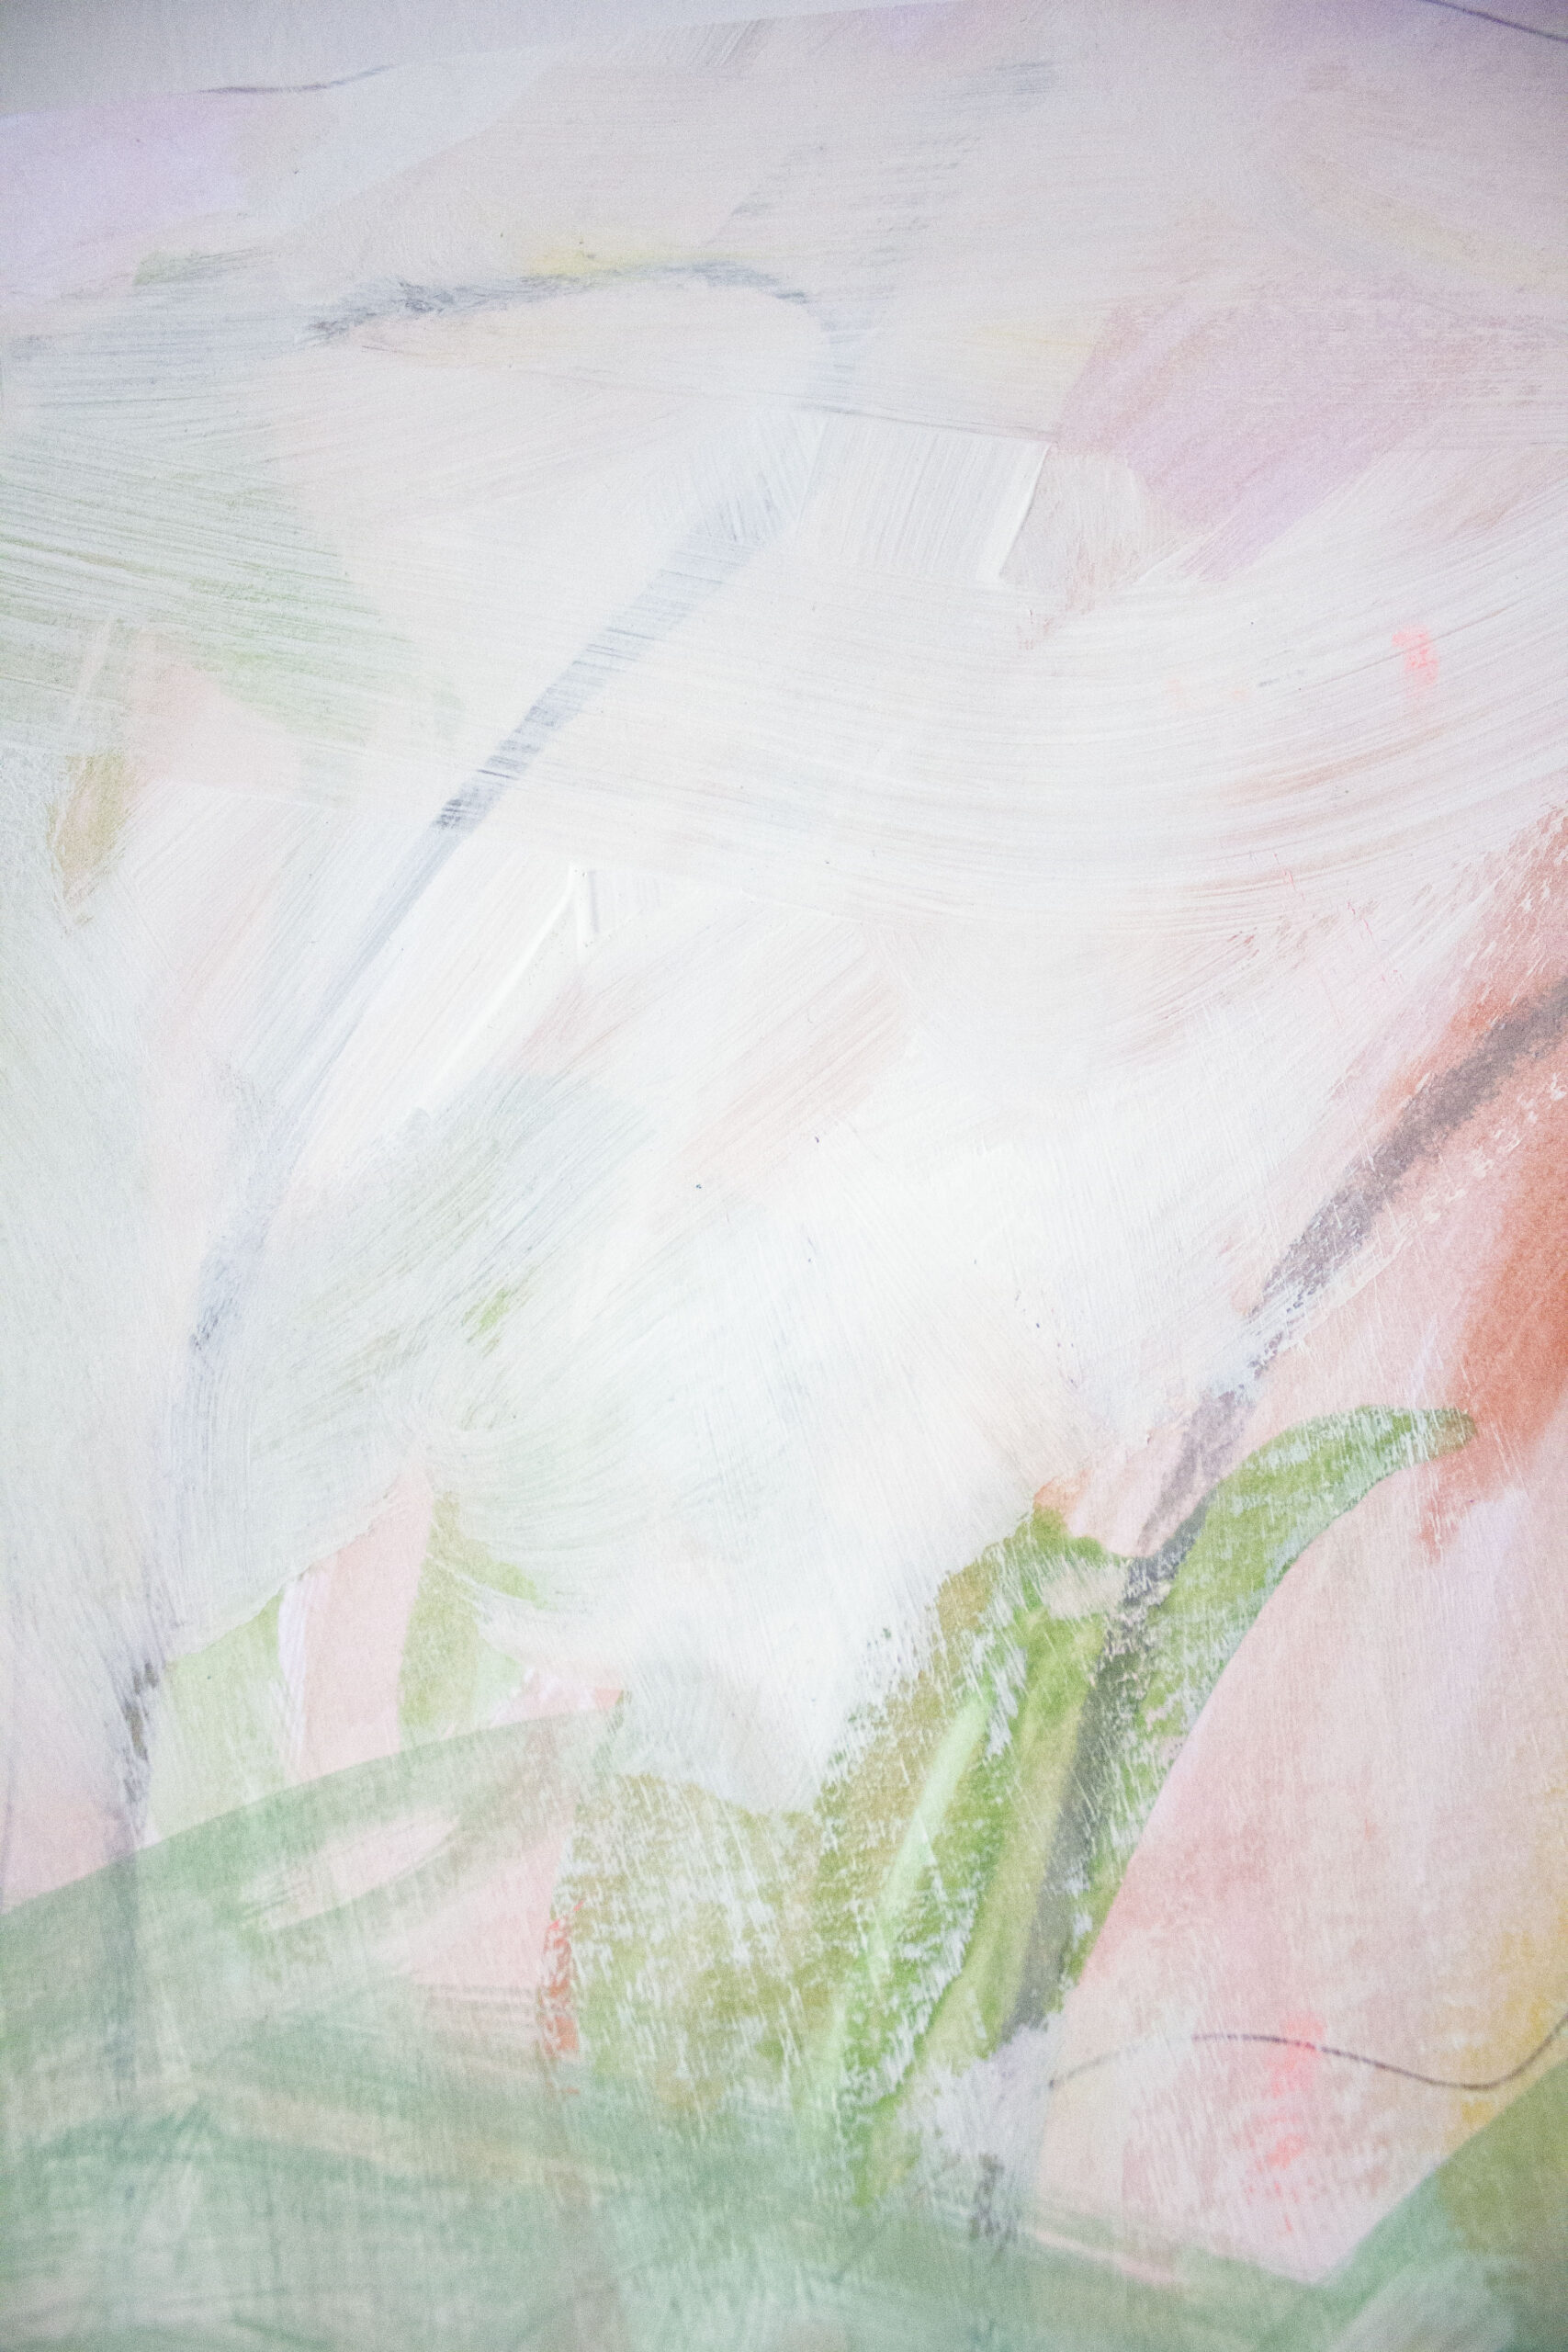 Róisín Bohan, Fluctuating Feelings 1 (Detail 2), Acrylic, Pastel and Pencil on Paper, 2019